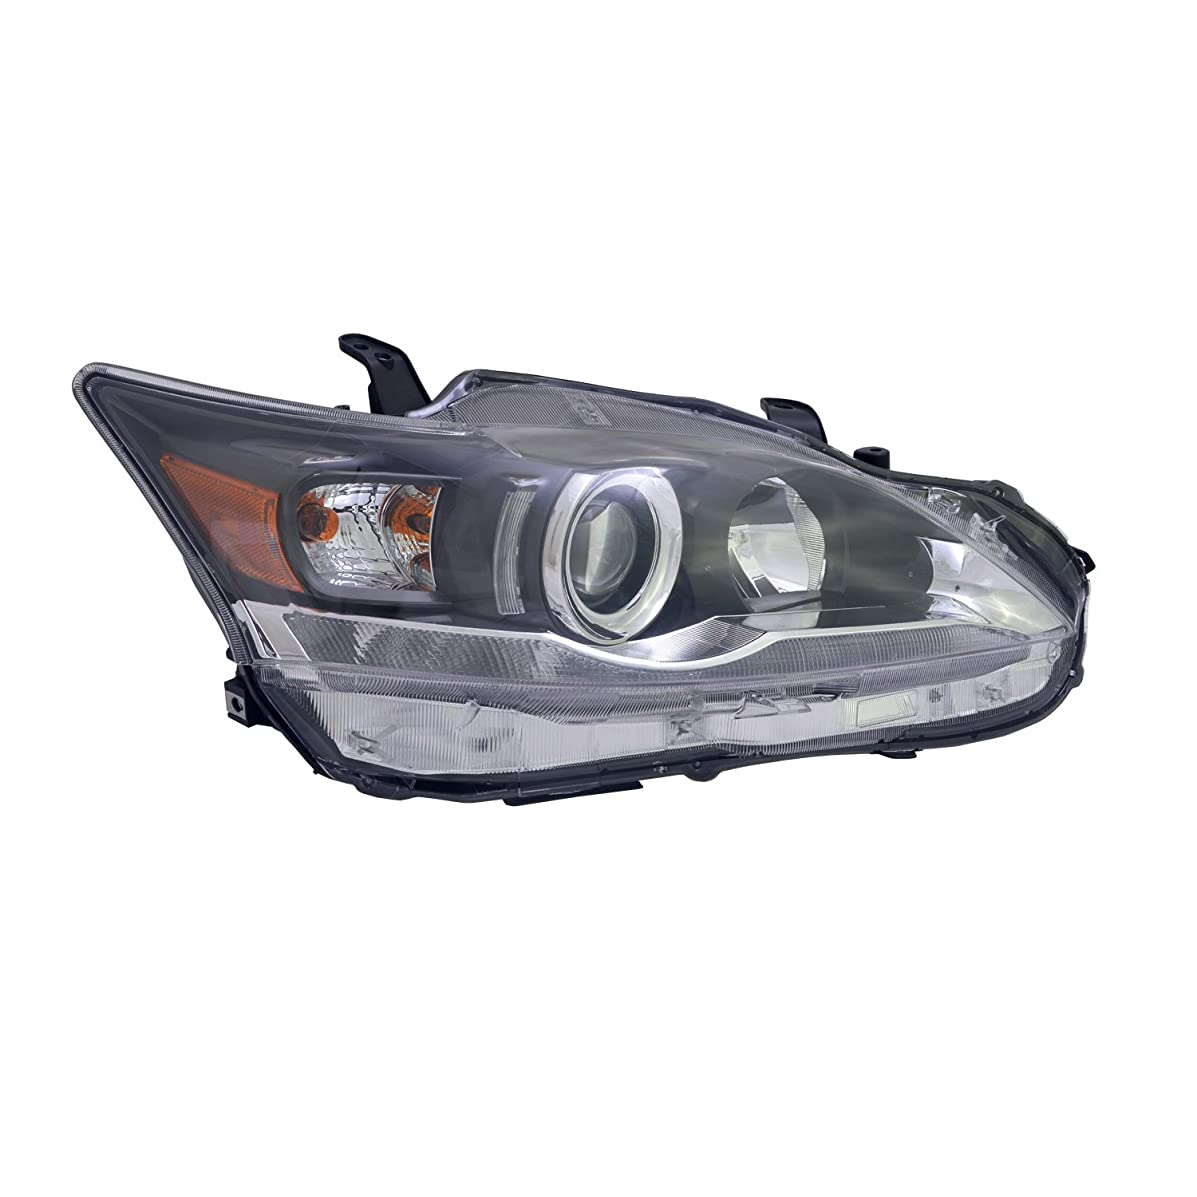 TYC 20-9259-00-1 Replacement right Head Lamp (LEXUS CT200H), 1 Pack